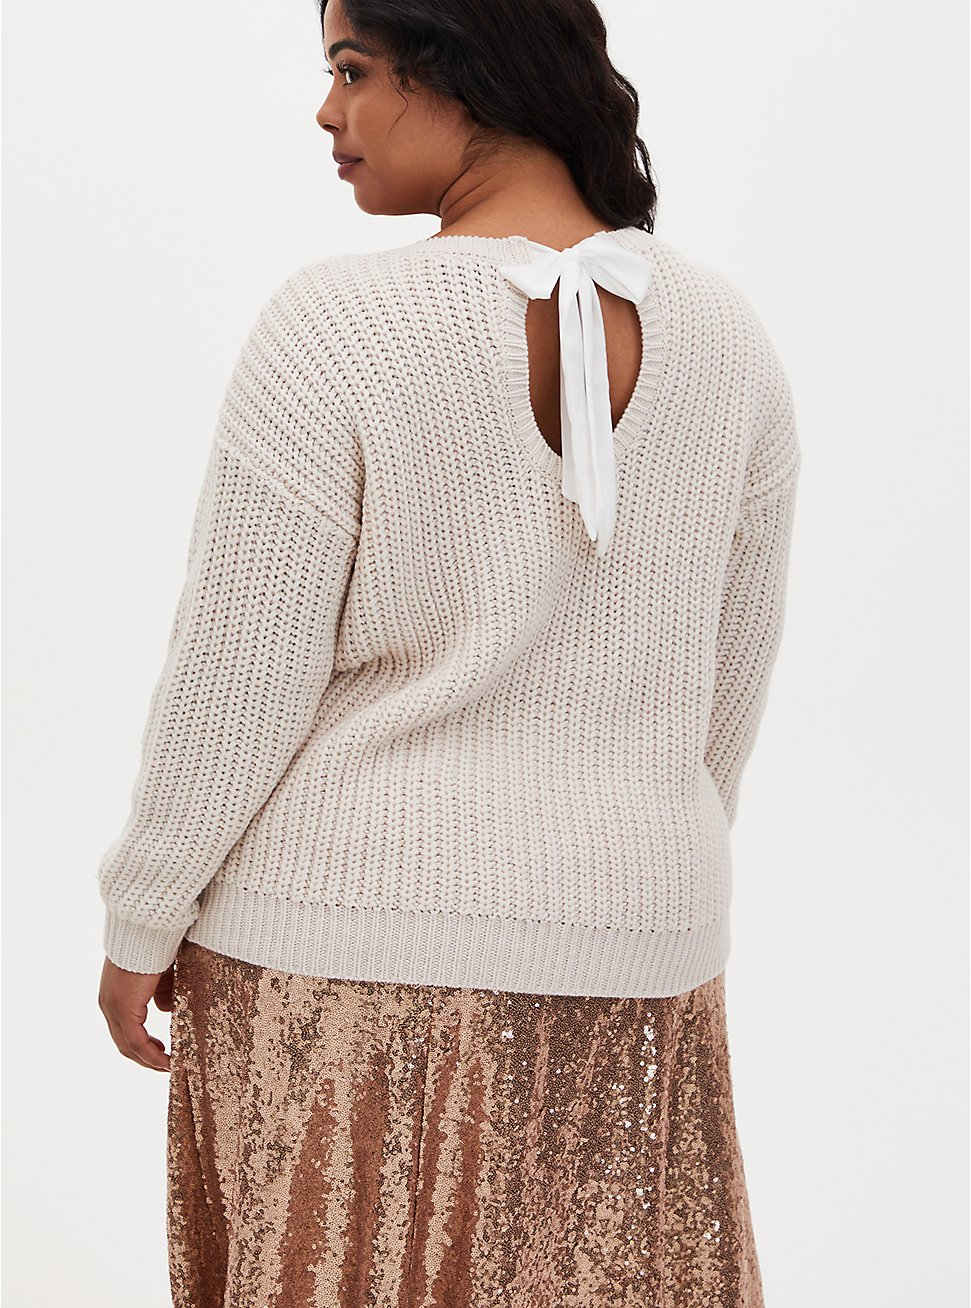 Ivory Fisherman Tie-Back Pullover Sweater, IVORY, hi-res